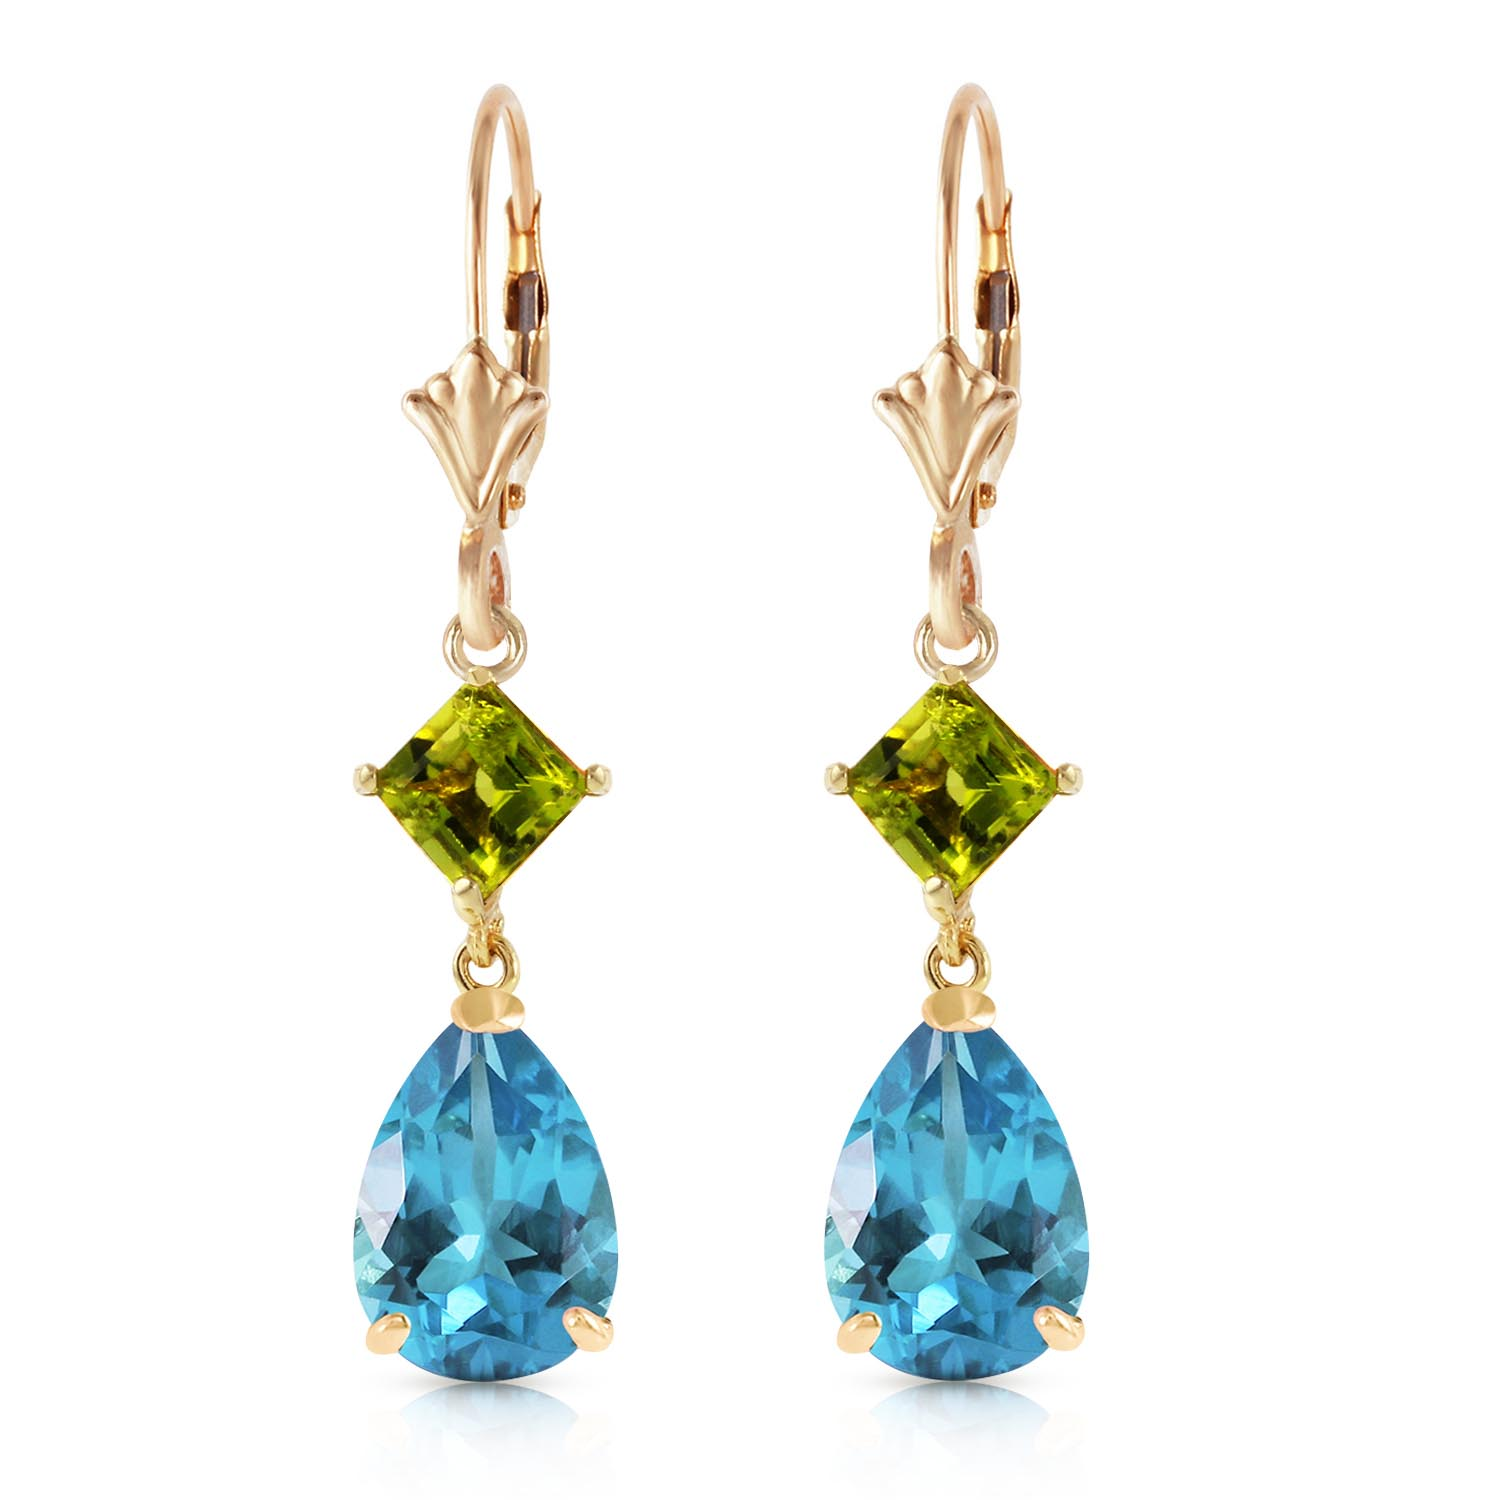 Blue Topaz and Peridot Droplet Earrings 4.5ctw in 9ct Gold